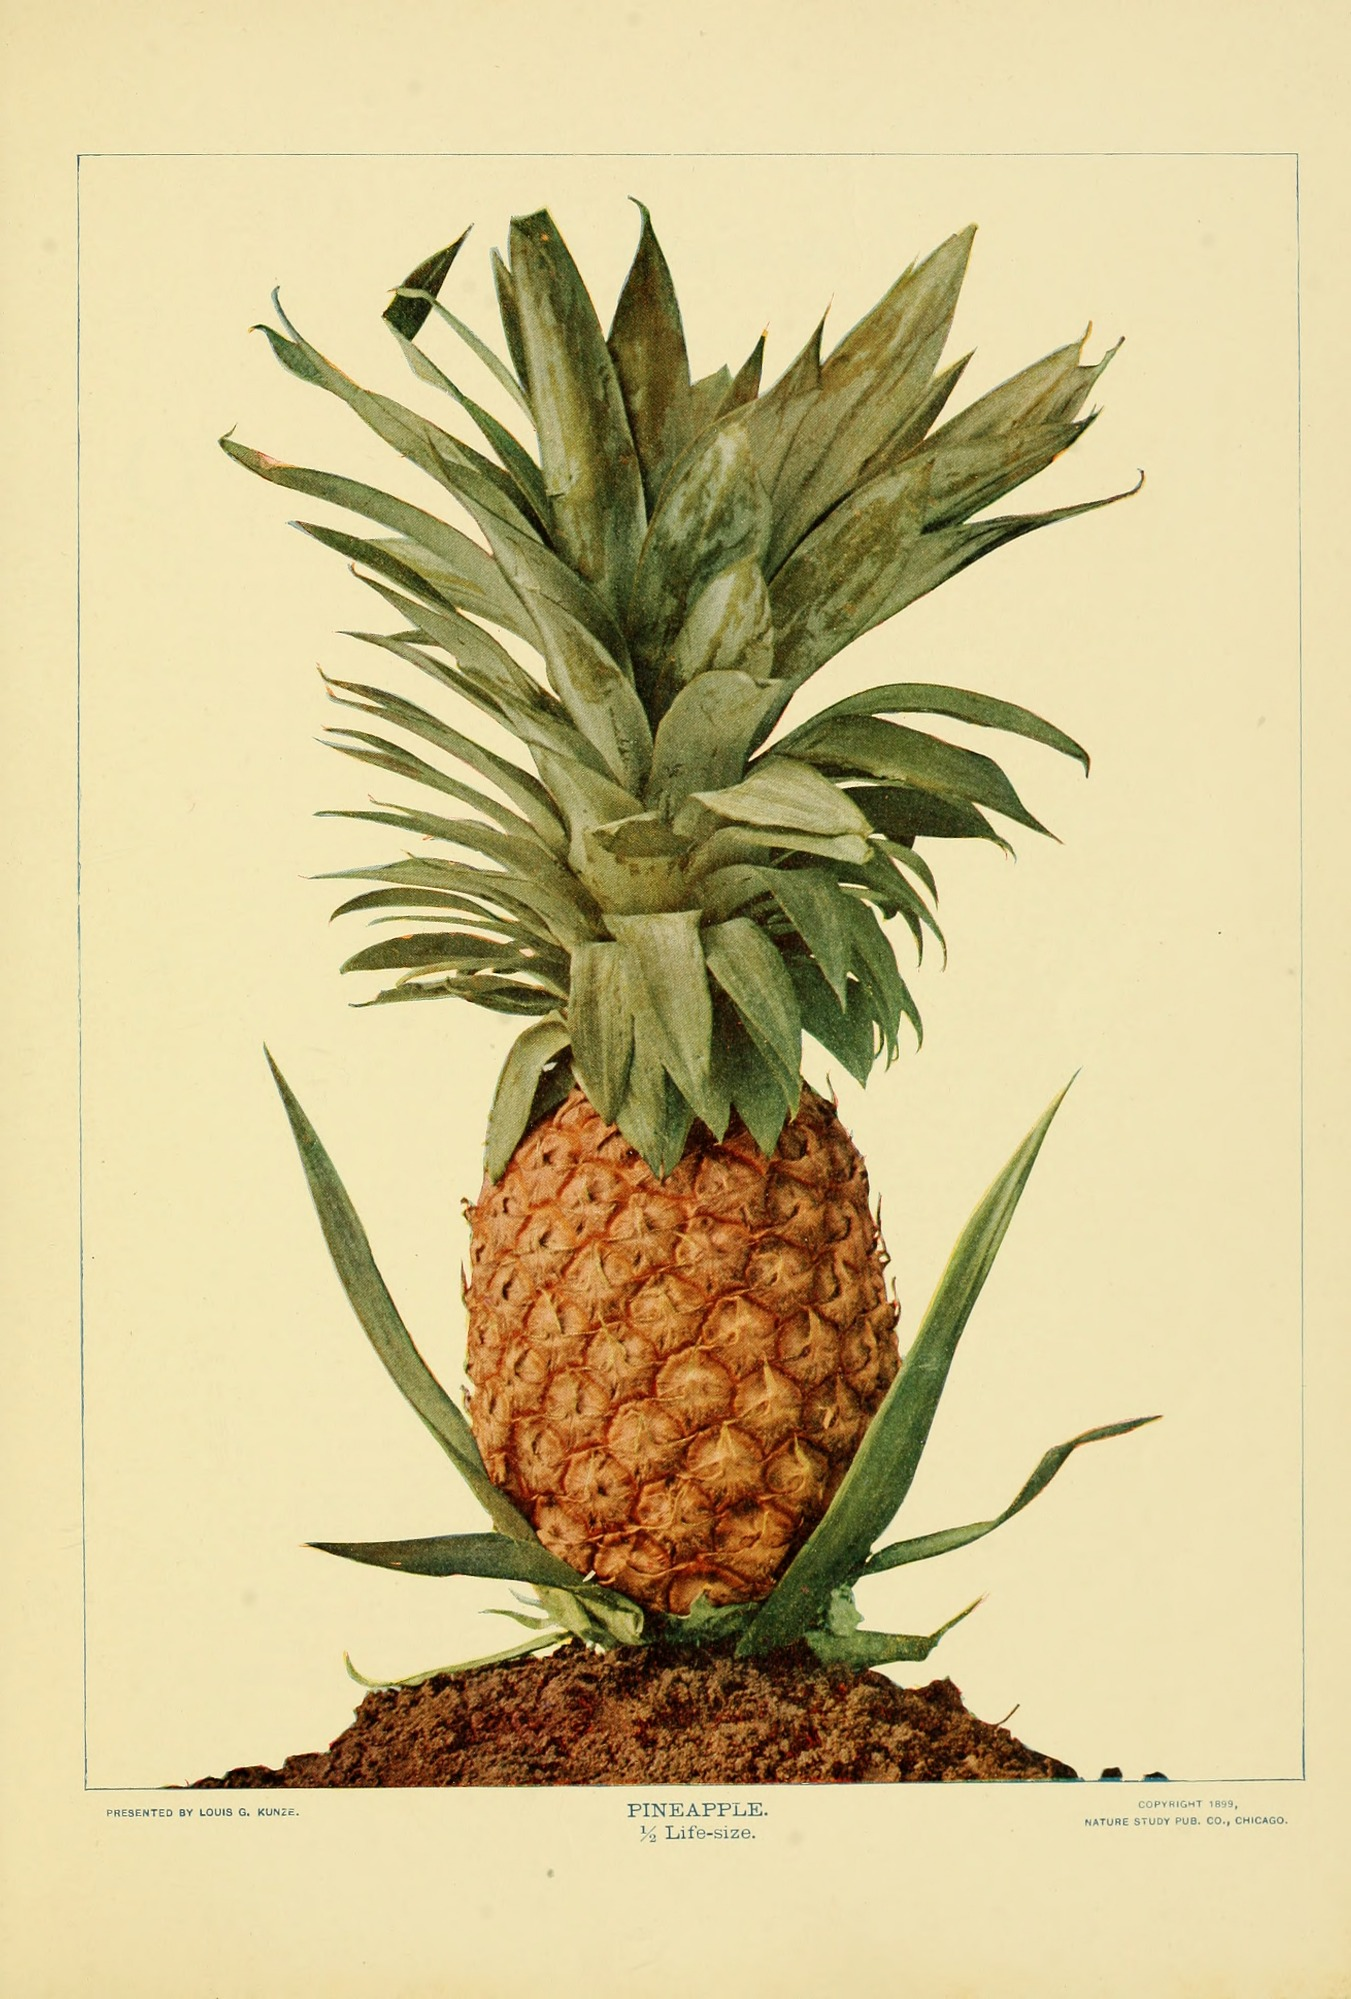 images for Pineapple from Birds and nature.